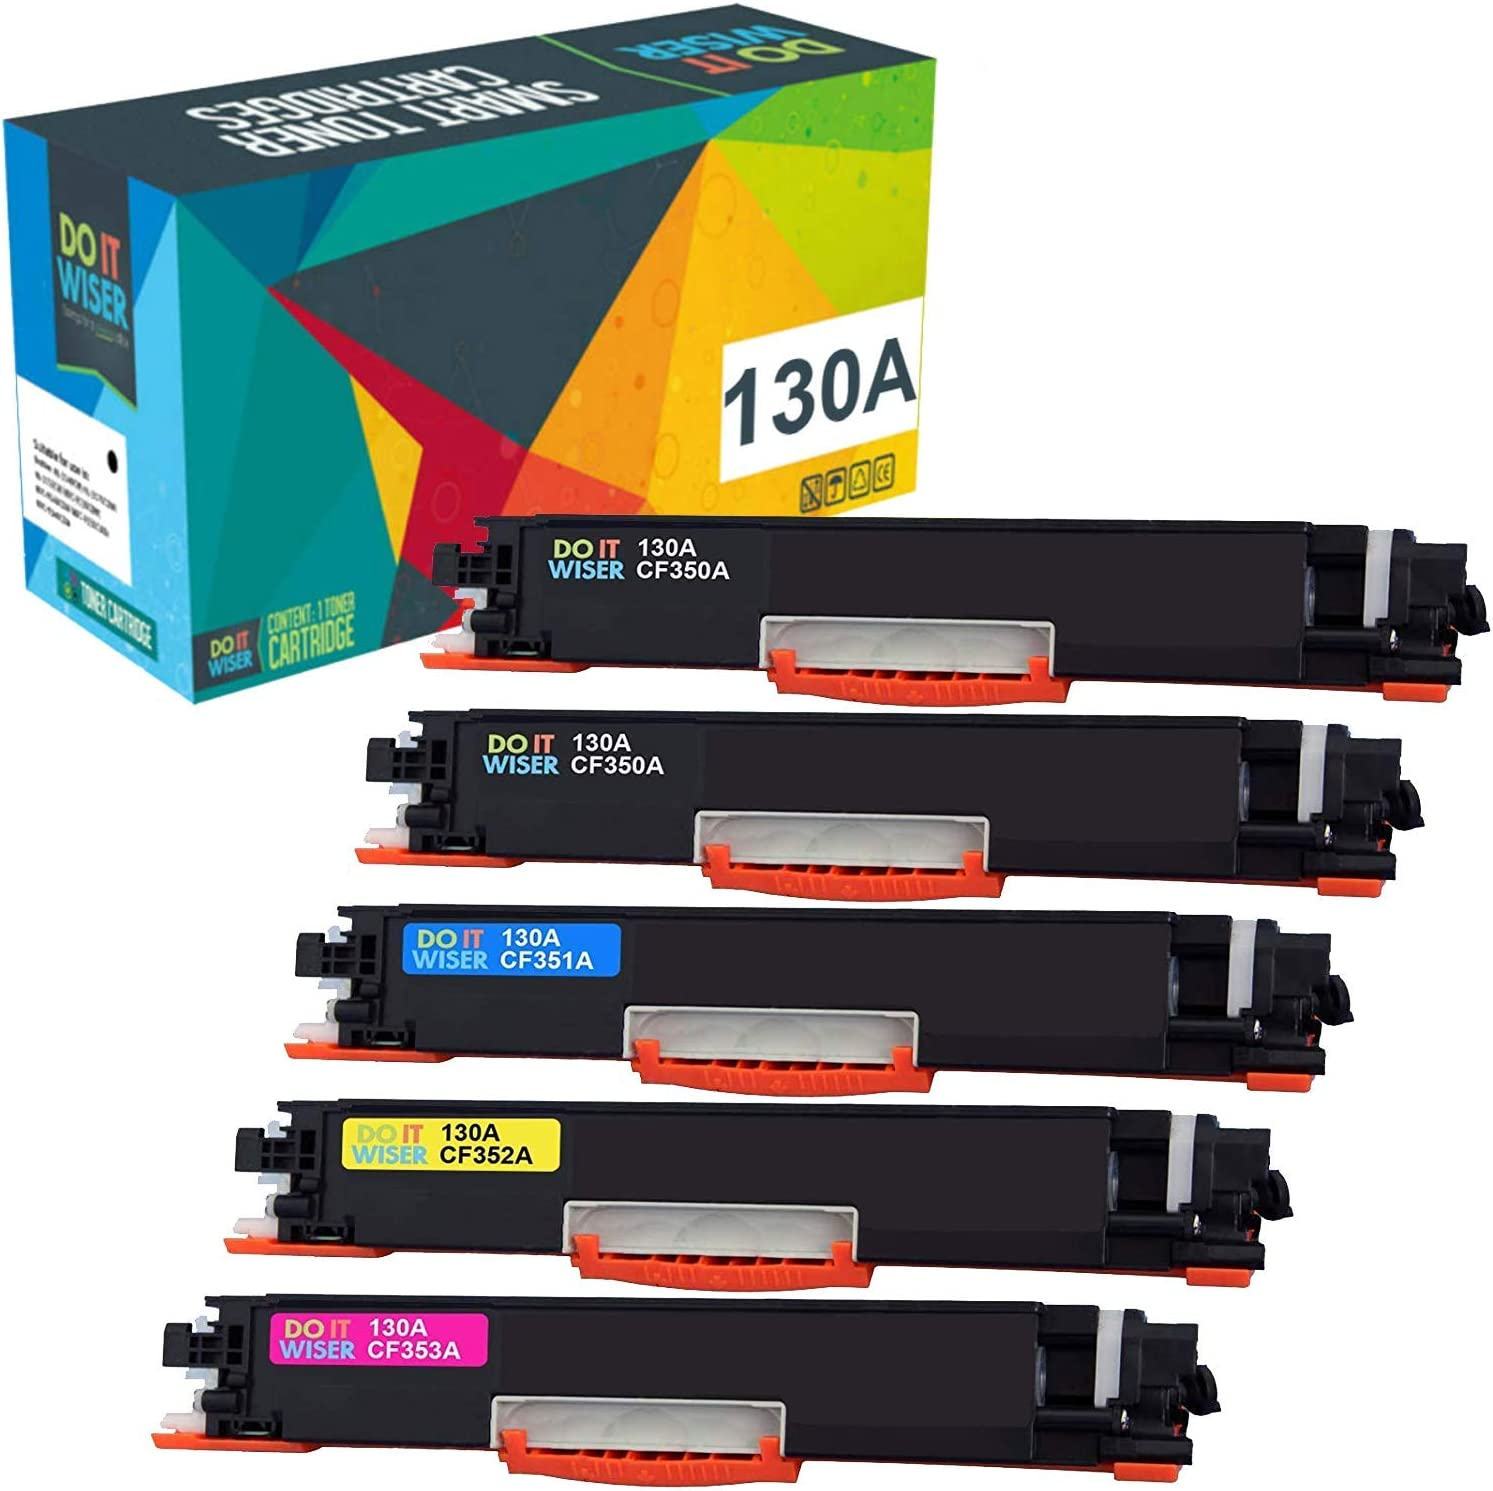 Do it Wiser Compatible Toner Replacement for HP 130A CF350A for HP Laserjet Pro Color MFP M176, M177, M177fw Printers (Black Cyan Magenta Yellow, 5-Pack)